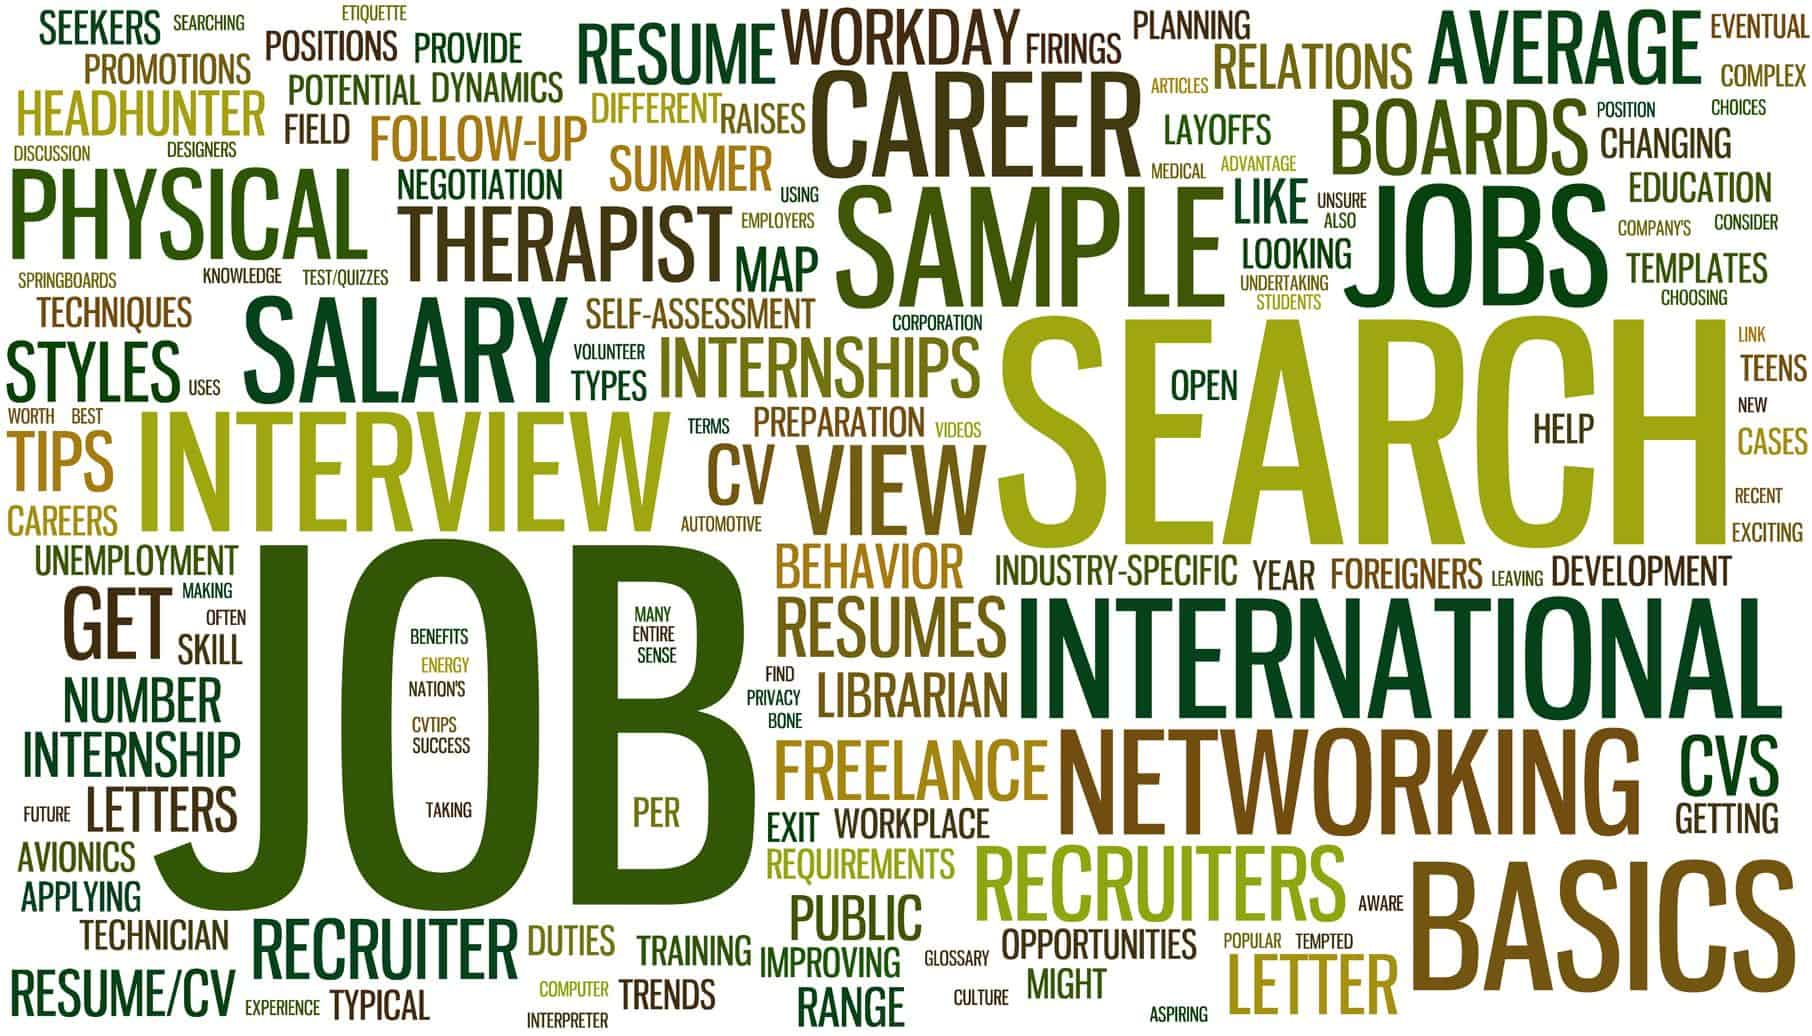 Job, Career, Continuing Education and Retirement